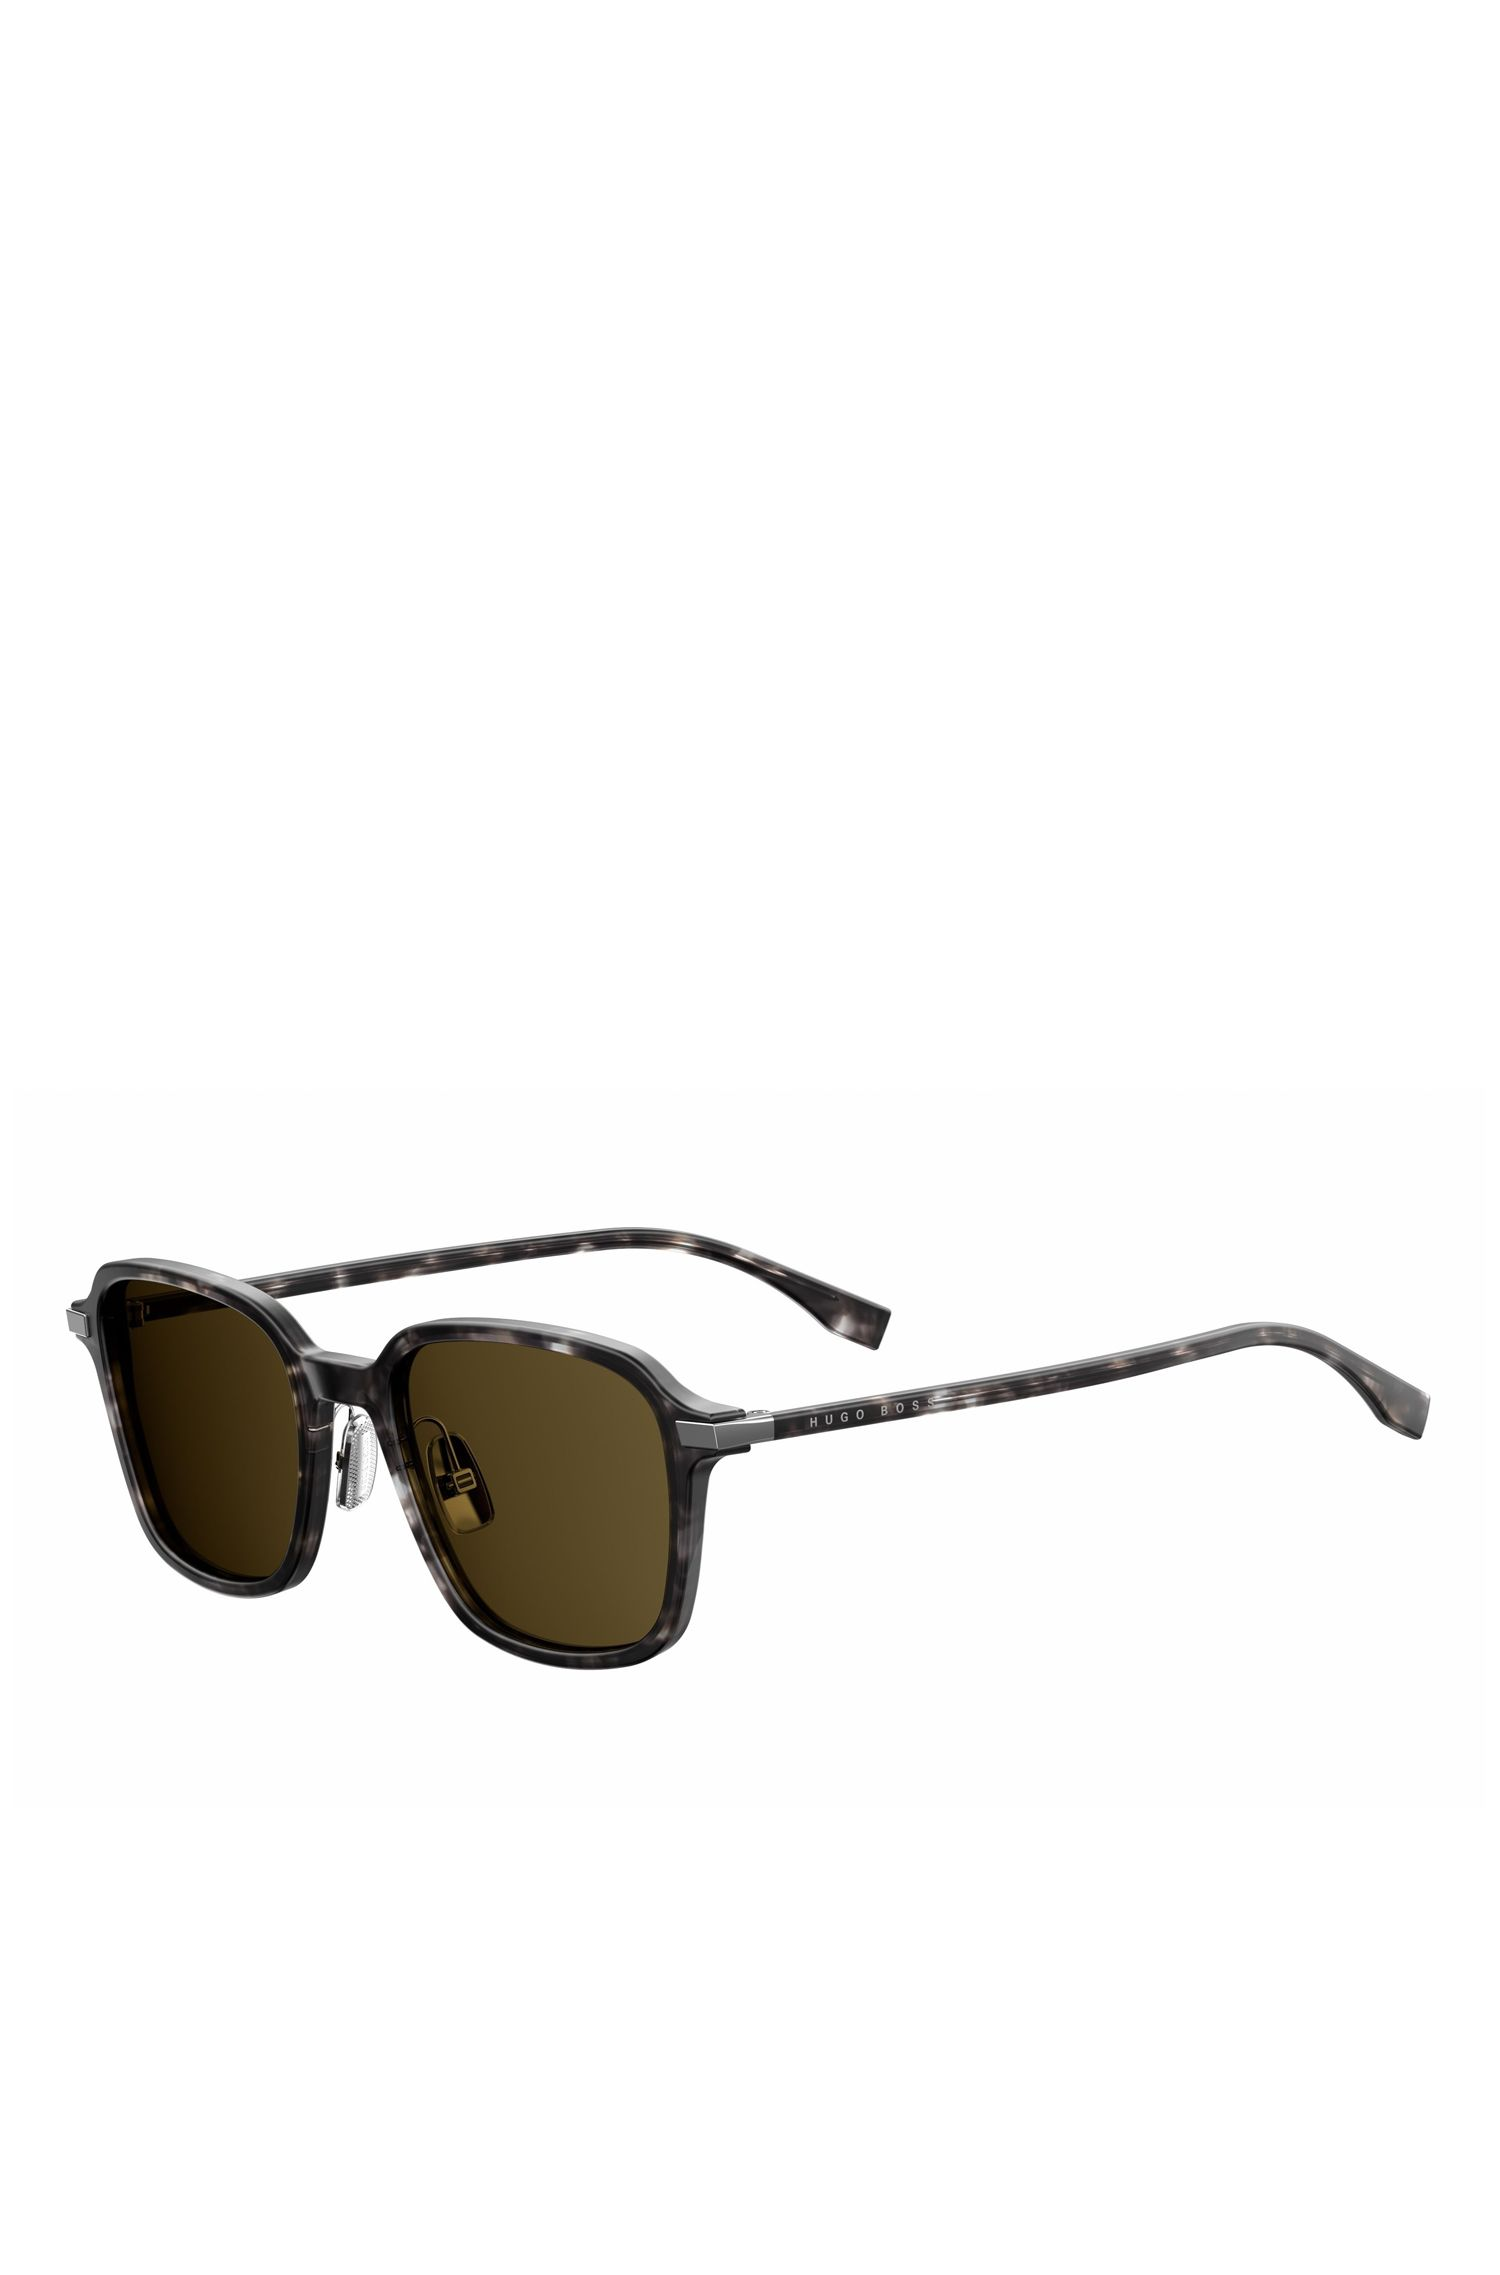 Brown Lens Havana Square Sunglasses | BOSS 0909S